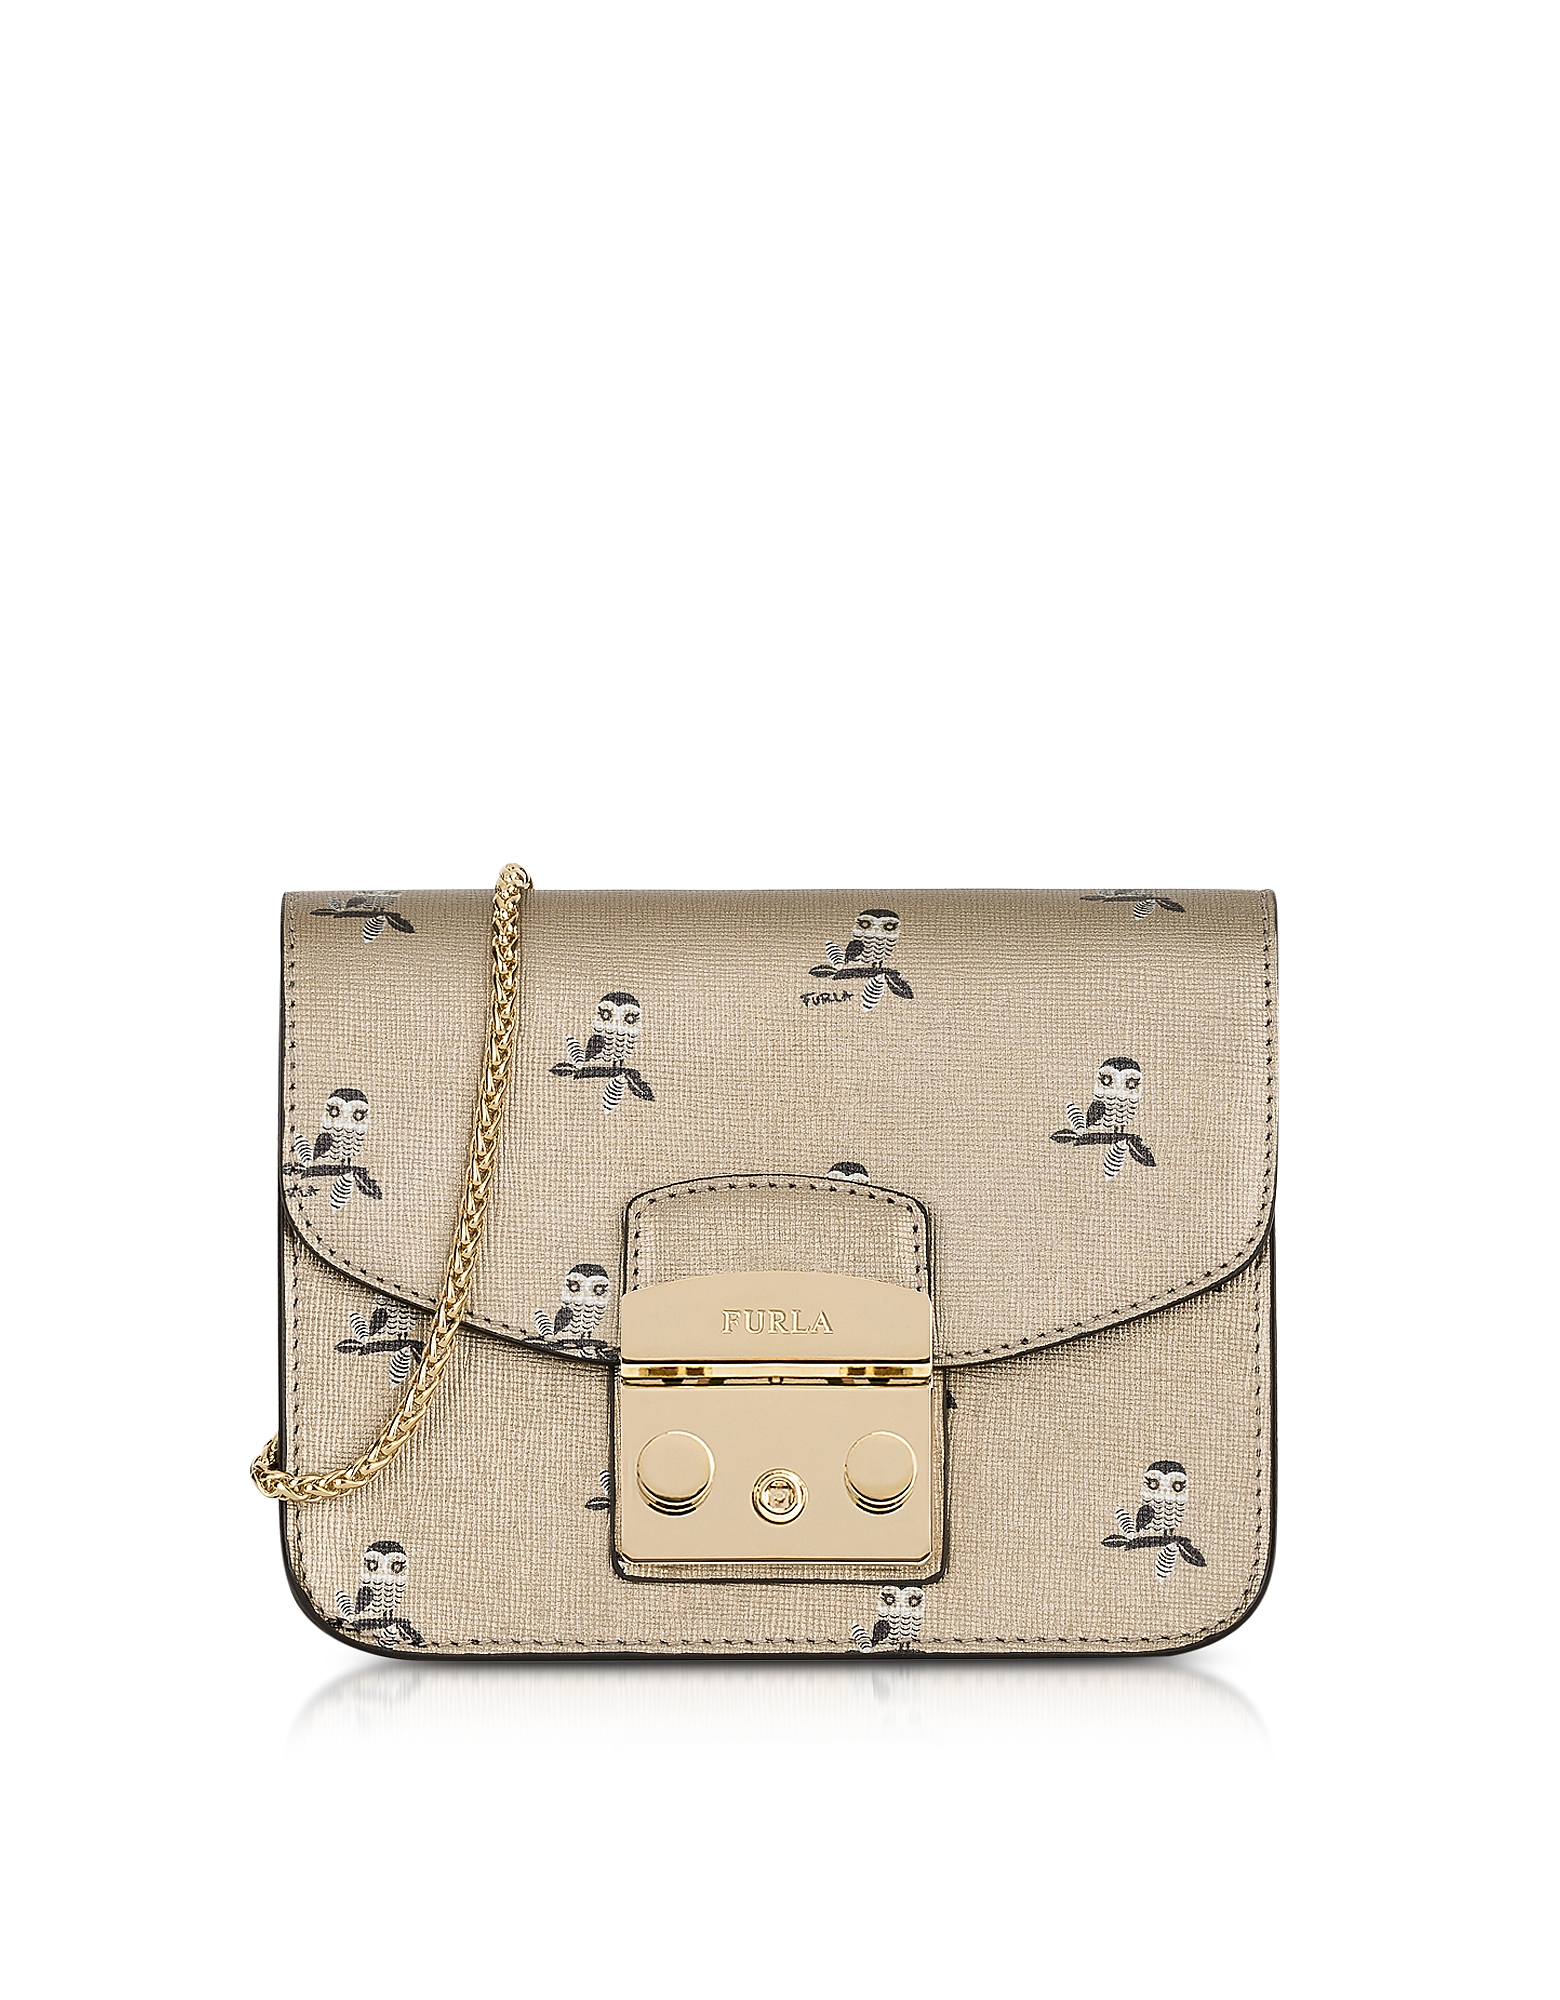 Furla Handbags, Toni Gold Mini Owl Printed Saffiano Leather Metropolis Mini Crossbody Bag